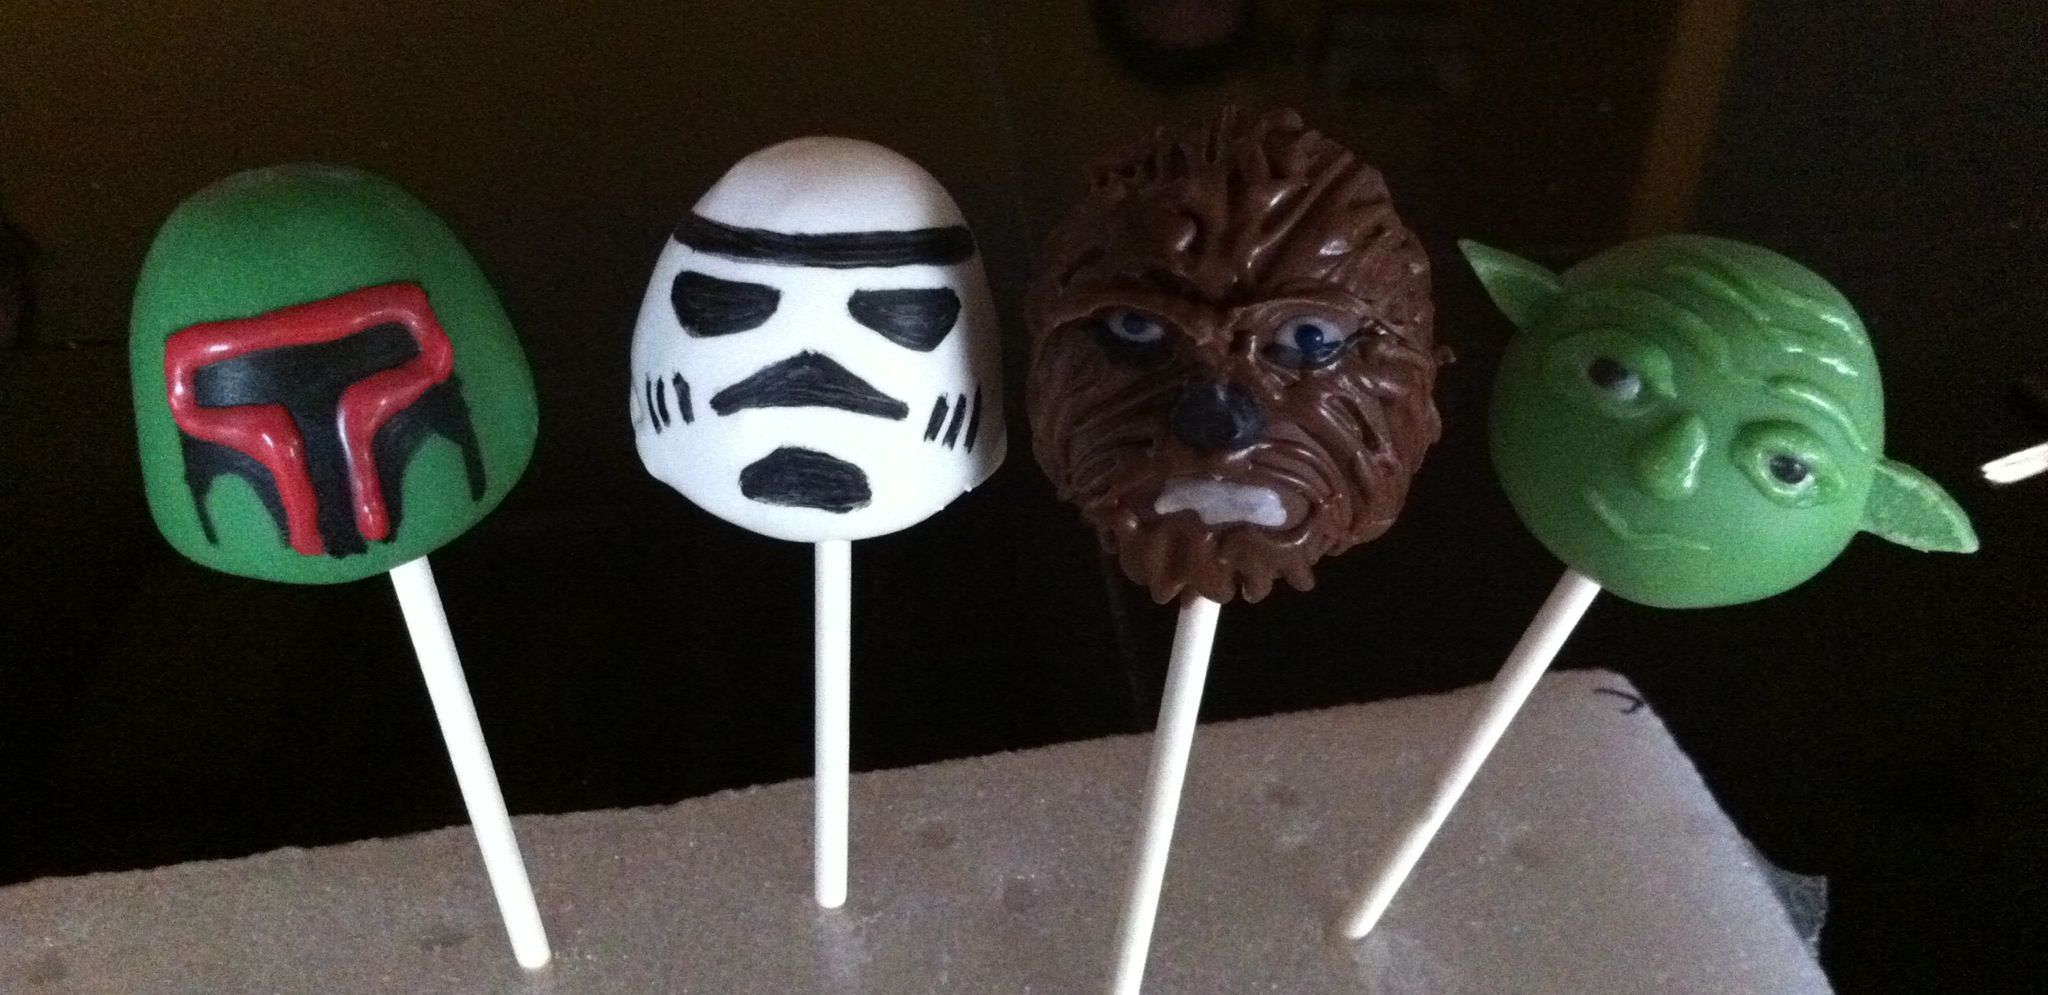 Star Wars Cake Pop Images : Star Wars cake pops! Close-up Cakes, Cupcakes, Cake Pops ...